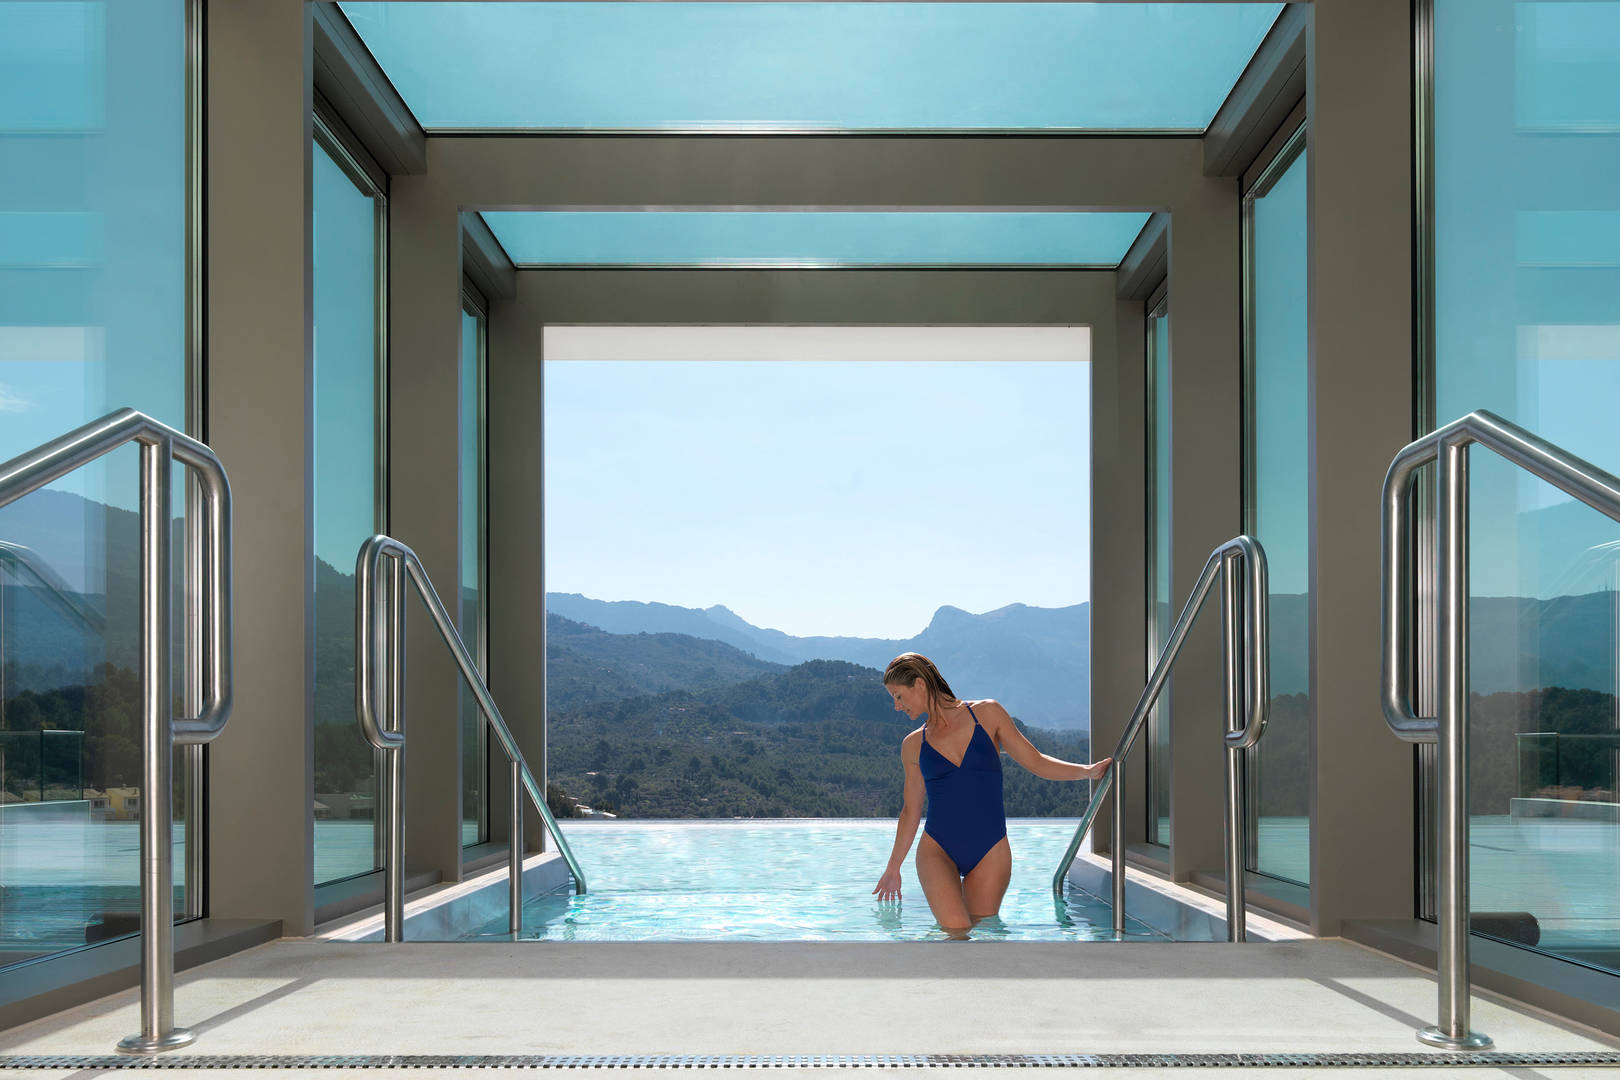 Jumeirah Port soller wellness guide, woman walking out of pool_6-4